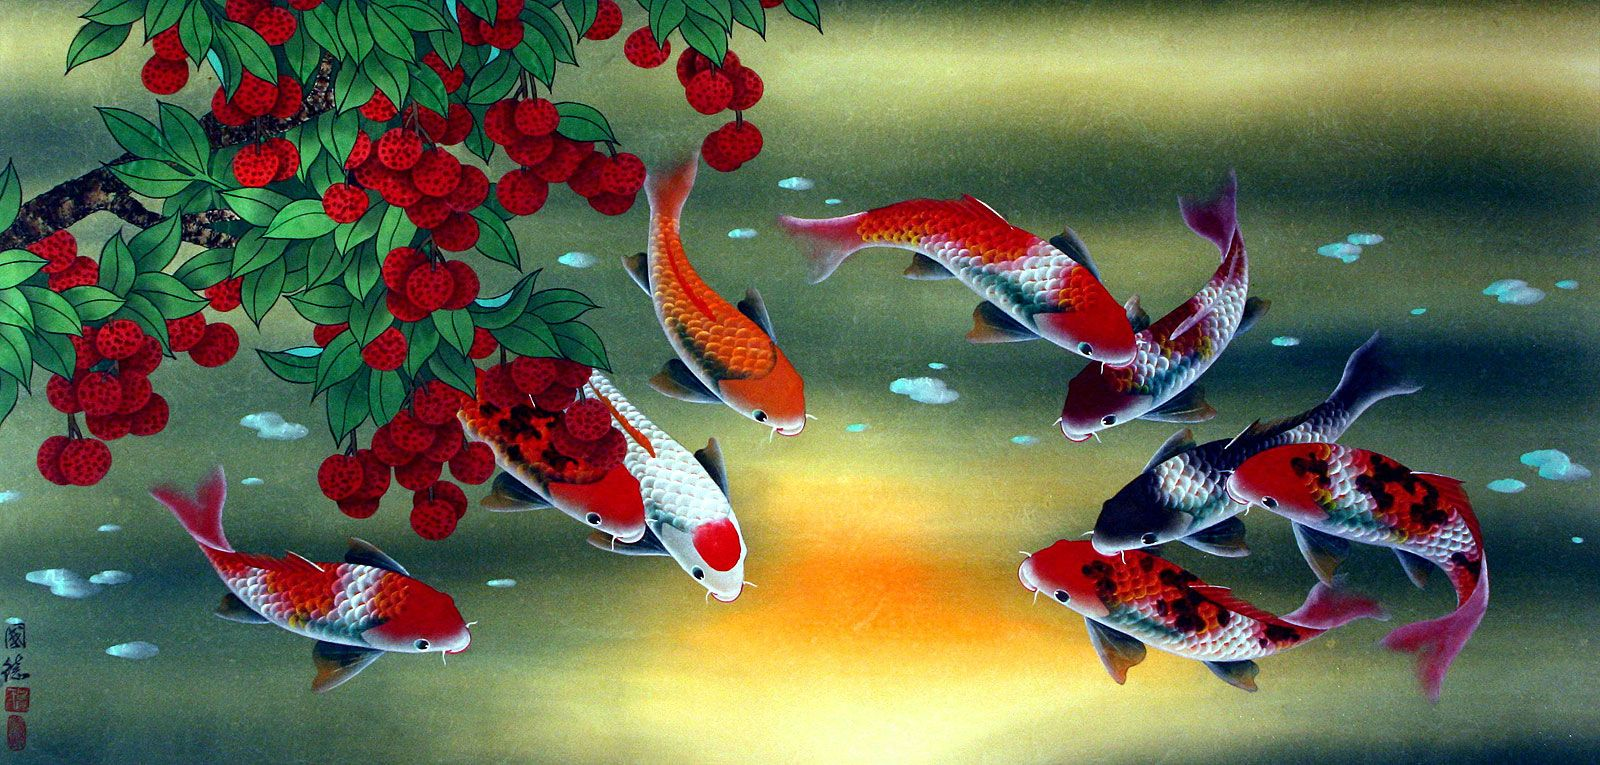 artist famous watercolo fisg | Huge Koi Fish and Lychee Fruit Painting - Asian Koi Fish Paintings .